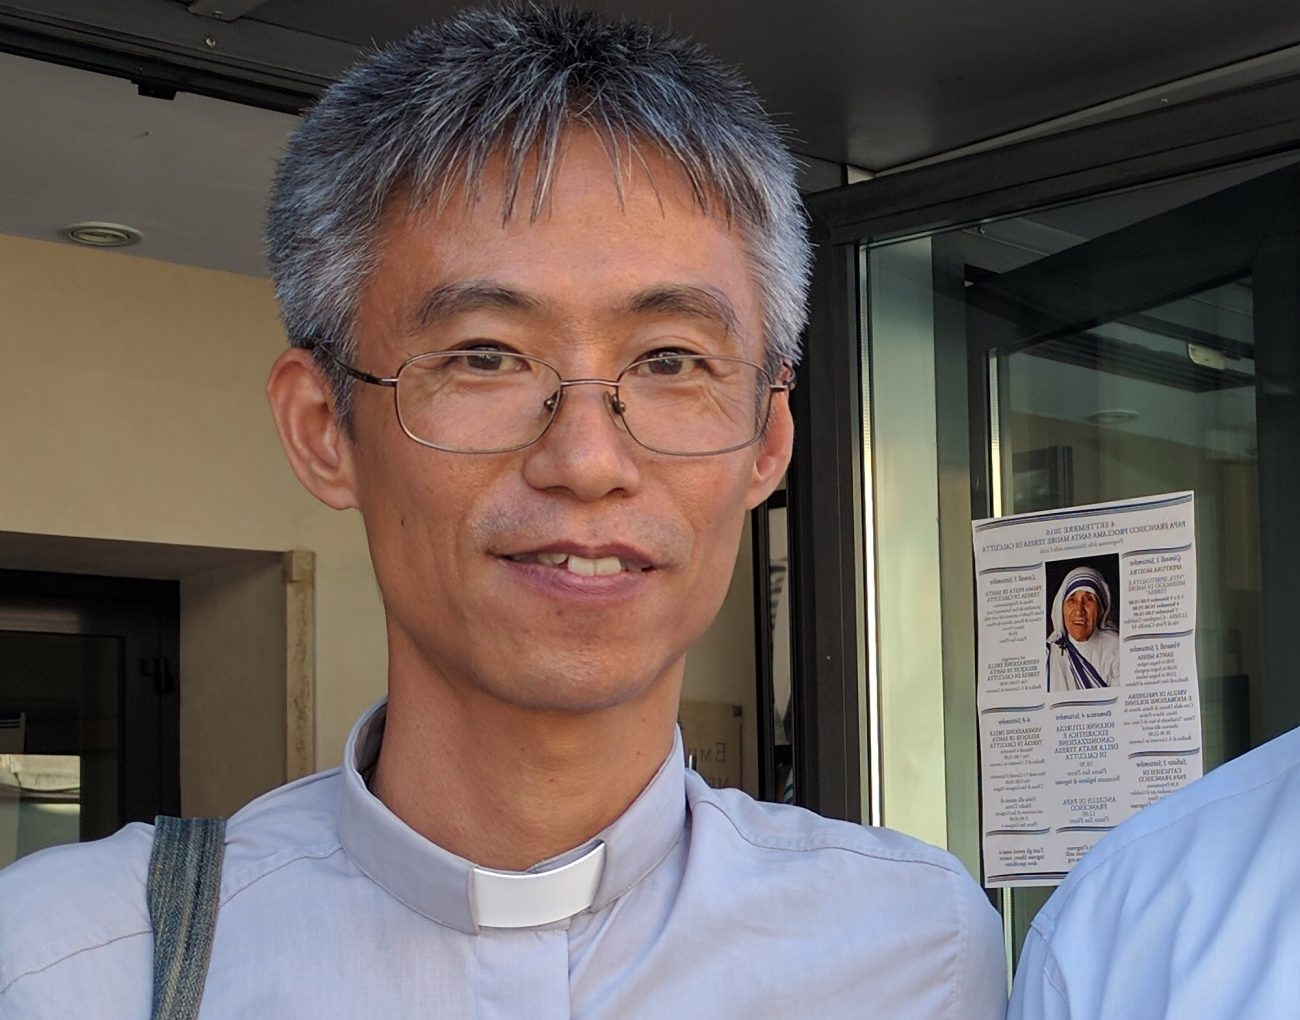 Missionaries of Charity Father Francisco Akihiro from Japan is pictured outside an exhibit on Blessed Teresa of Kolkata in Rome Sept. 2. A personal encounter with Mother Teresa led Father Akihiro to become Catholic and eventually a priest. He was born into a Buddhist family and said he didn't know the name of Jesus. (CNS photo/Junno Arocho Esteves)